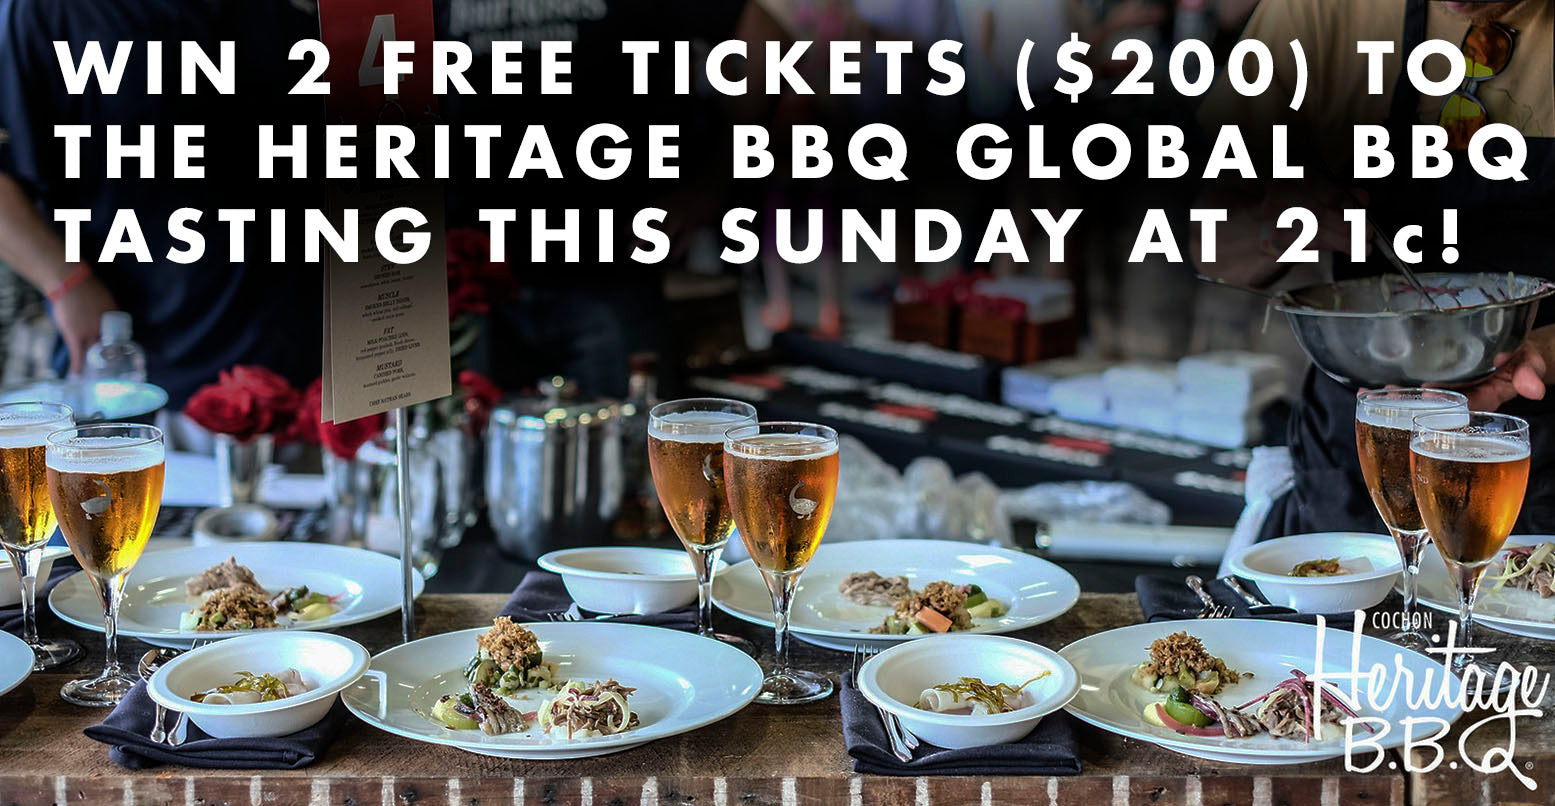 Win 2 FREE Tickets to the Heritage BBQ Global BBQ Tasting